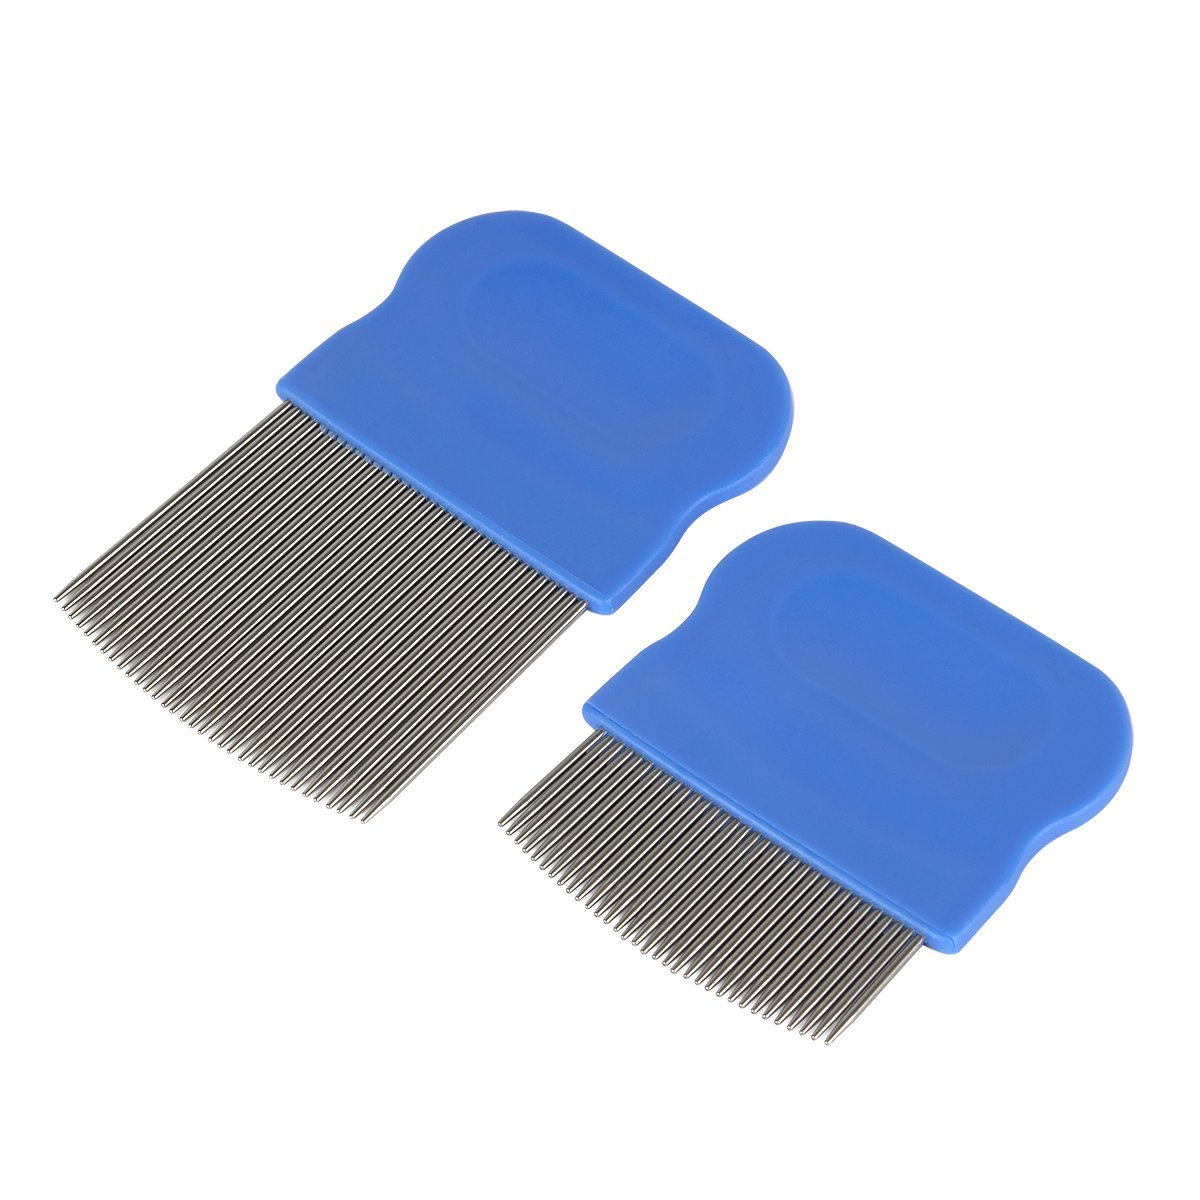 AcuLife Lice Removal Combs Pack of 2 Health Enterprises 400594